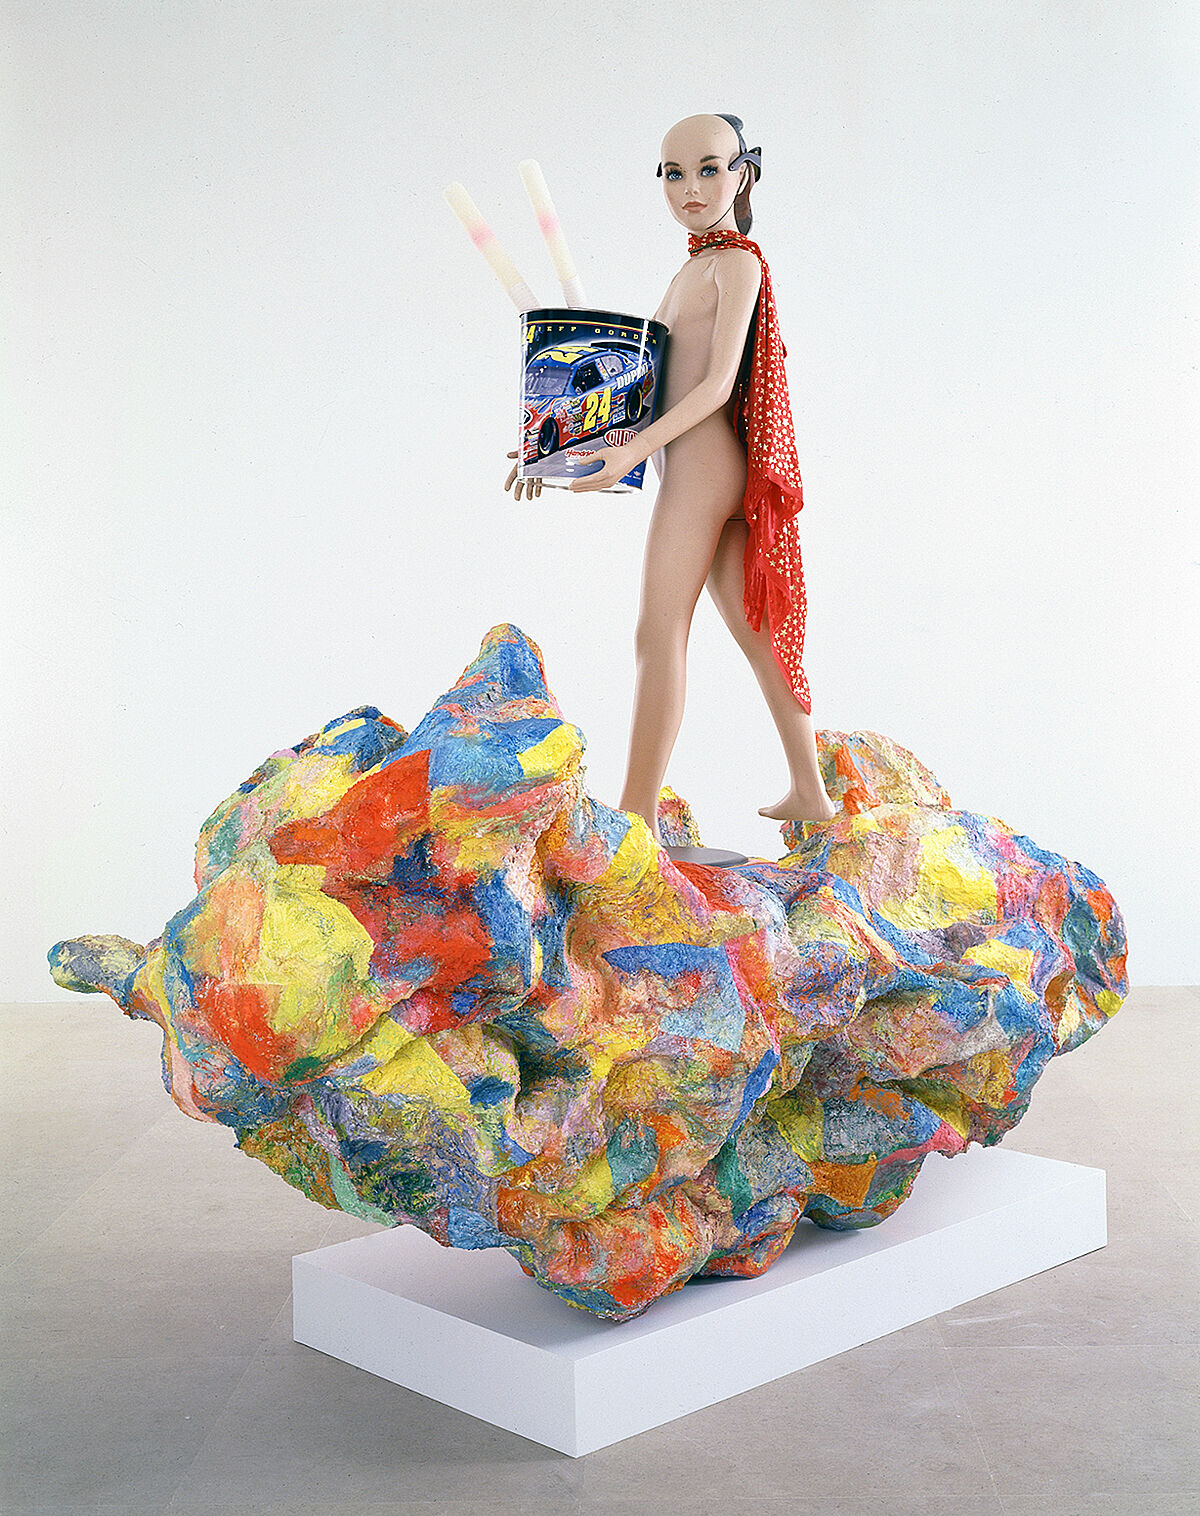 A sculpture of a person standing on a colorful mound wearing a cape and carrying a bucket.